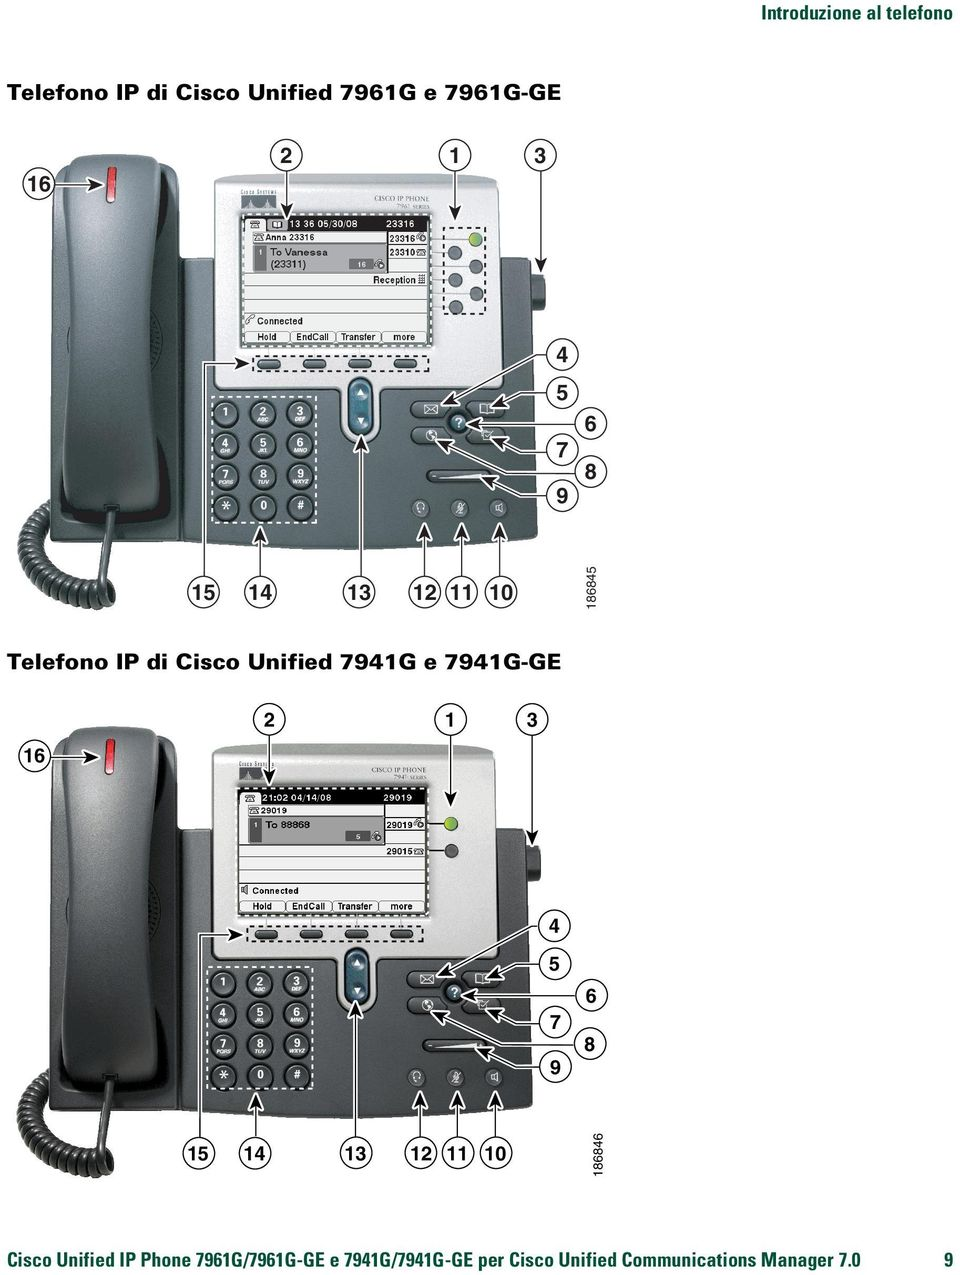 7941G-GE 2 1 3 16 1 4 5 7 9 6 8 15 14 13 12 11 10 186846 Cisco Unified IP